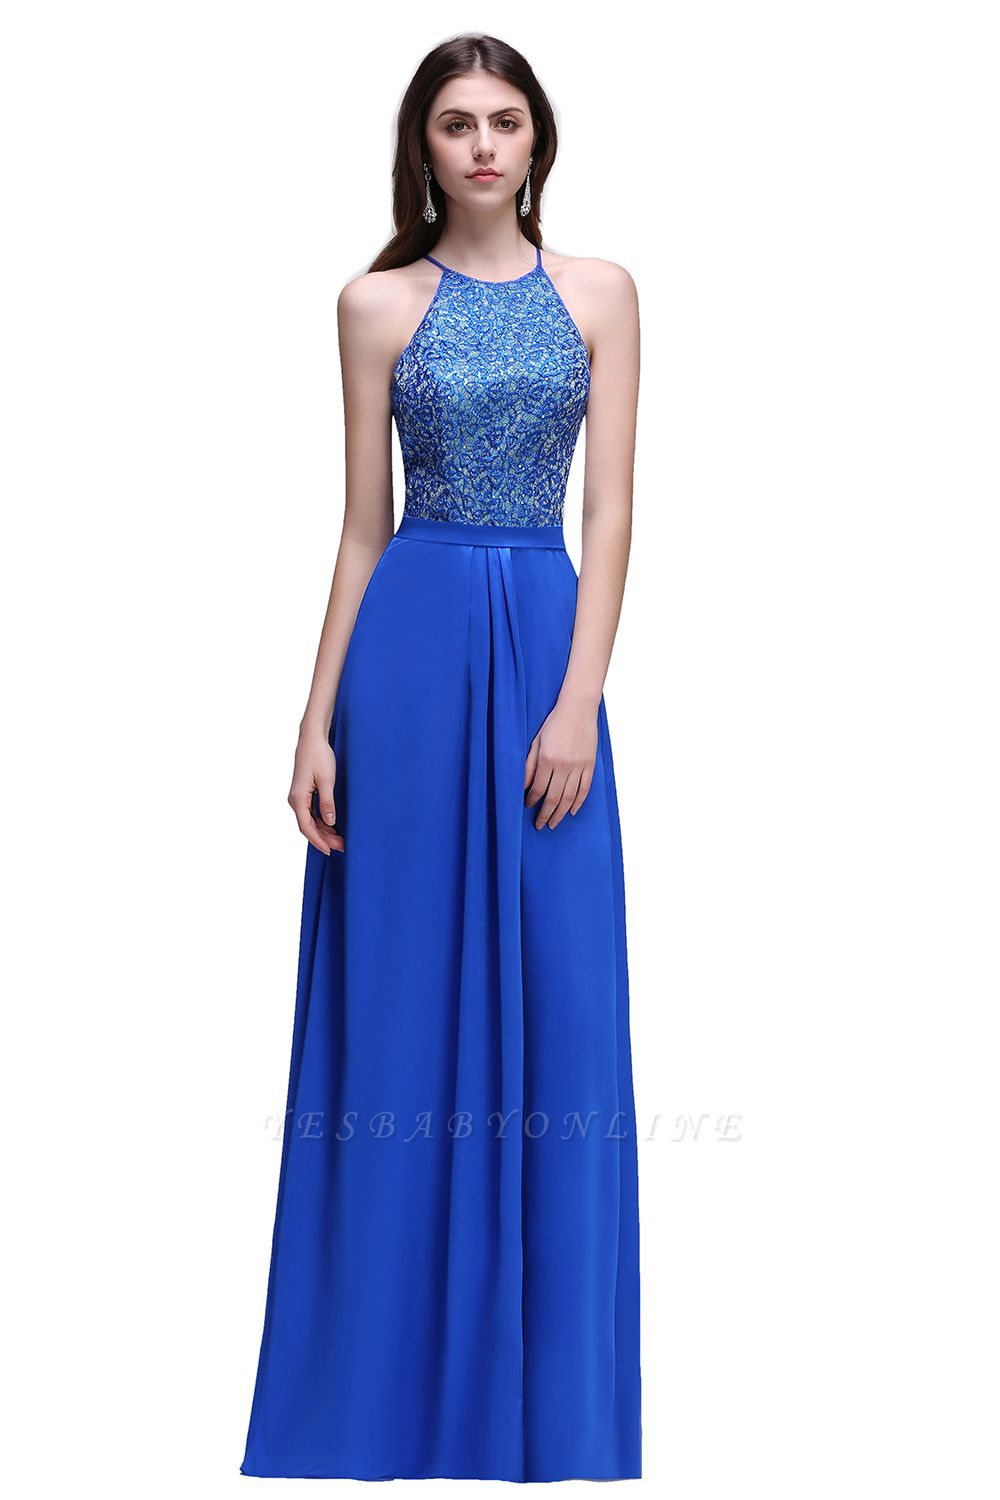 CALLIE   A-line Halter Neck Chiffon Royal Blue Prom Dresses with Sequins